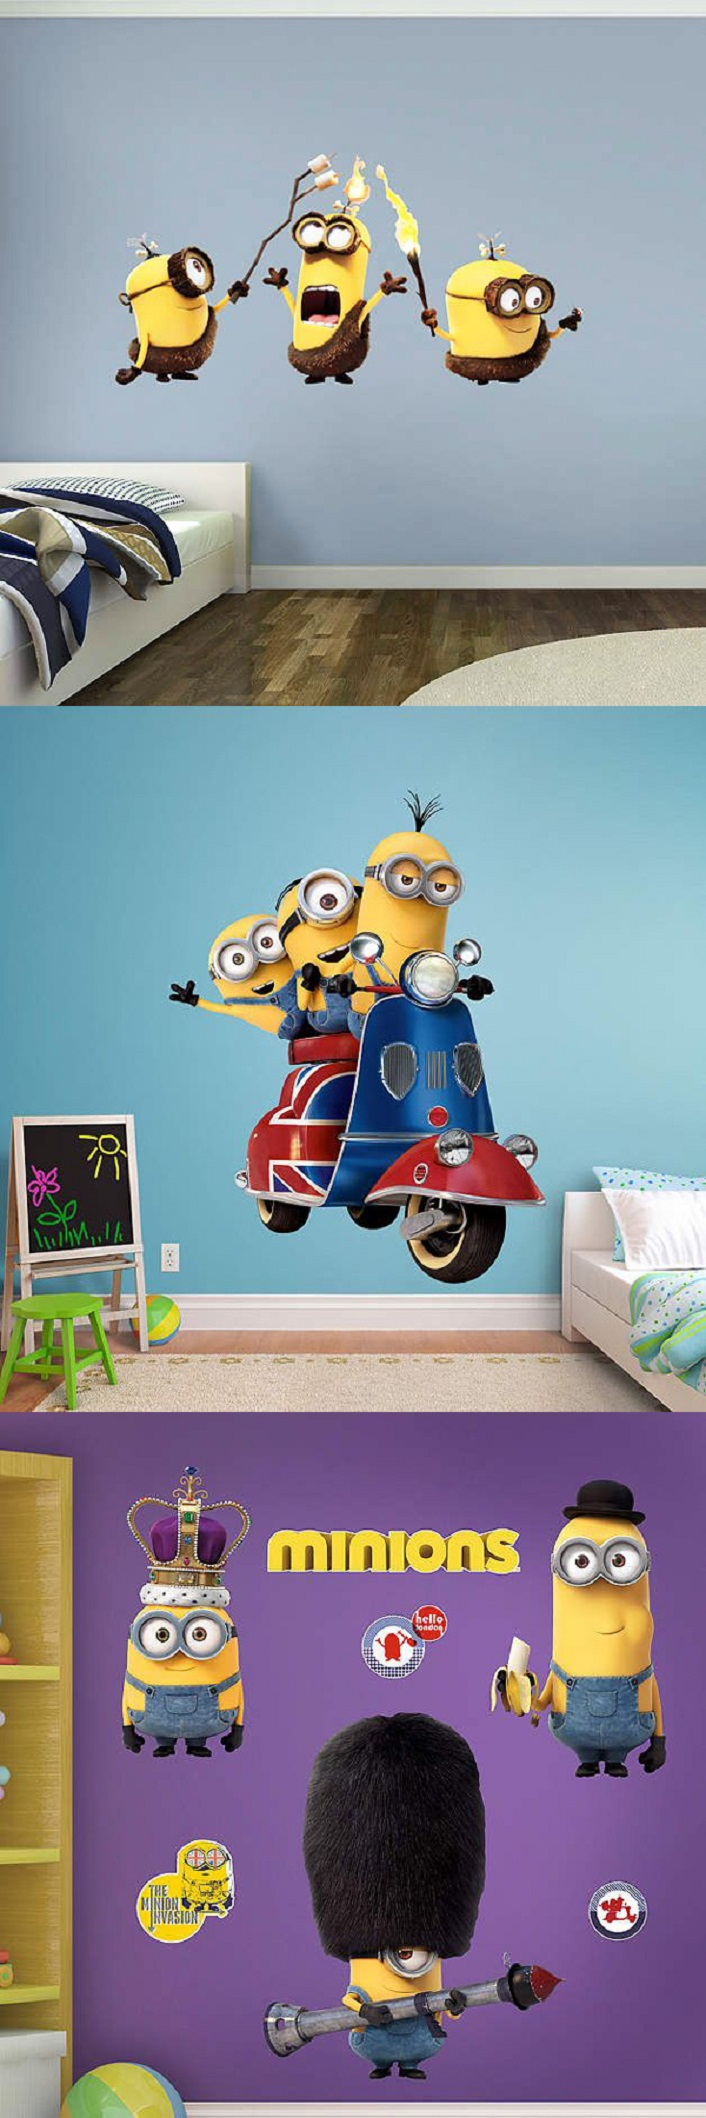 20 Awesome Ideas To Decorate Your Home With Minions Architecture Design